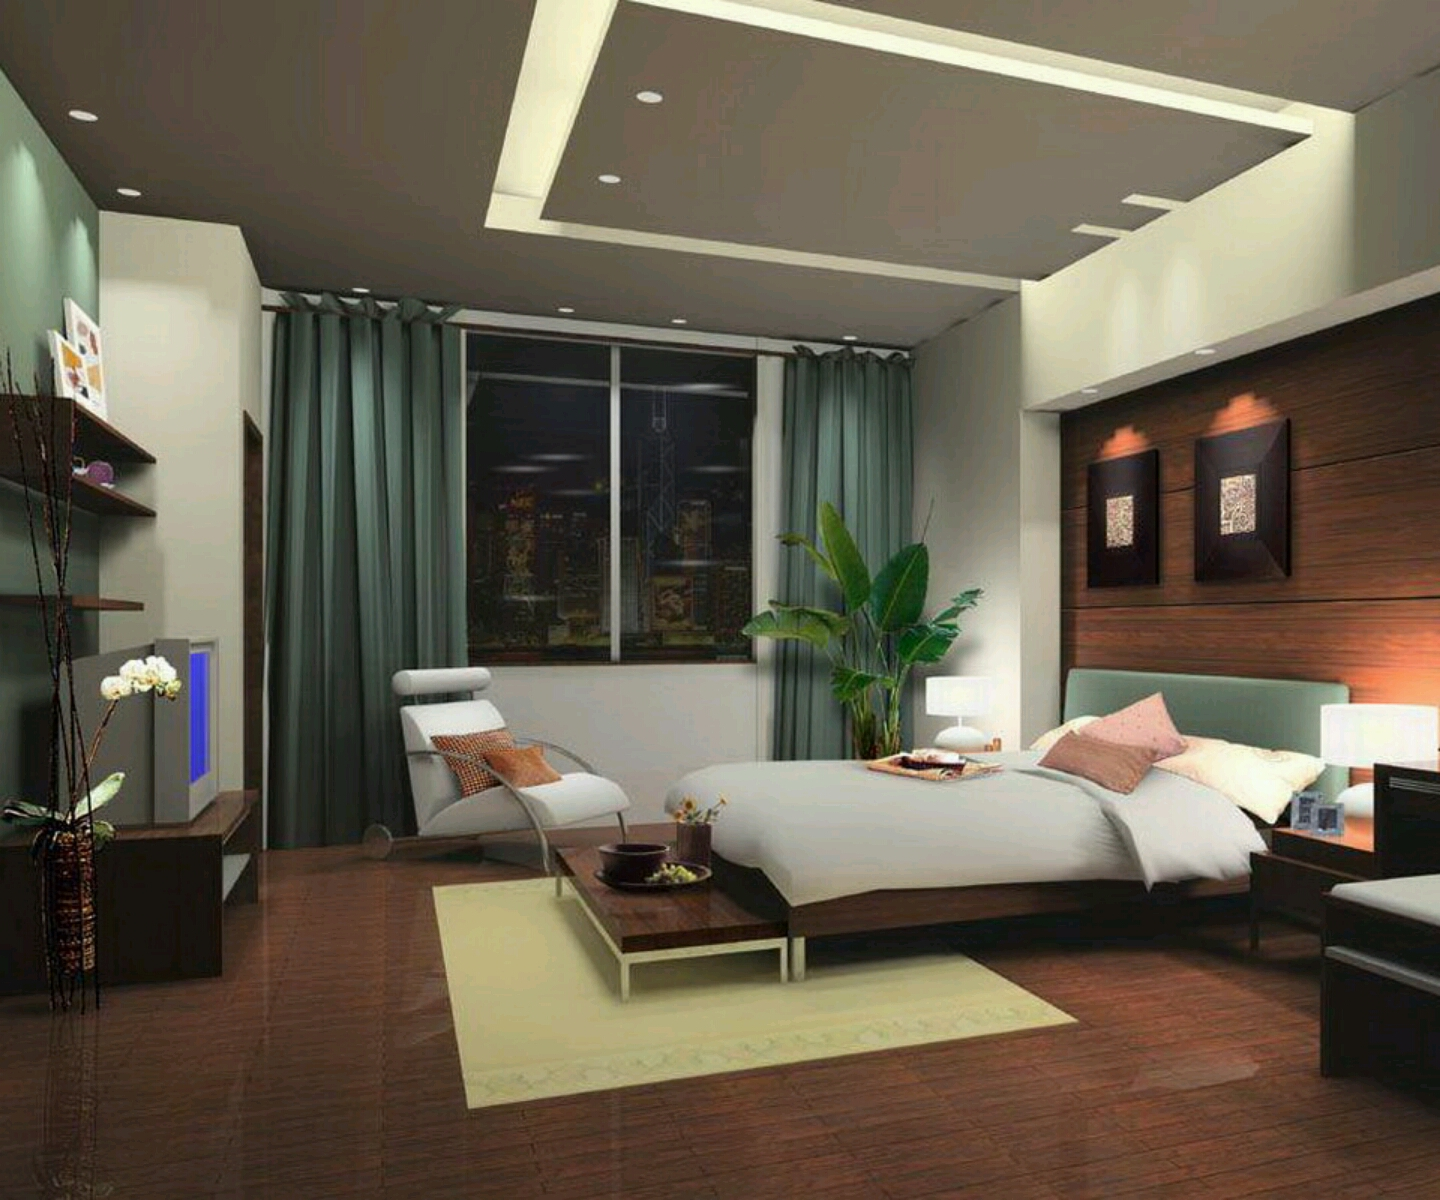 New home designs latest modern bedrooms designs best ideas for New decorating ideas